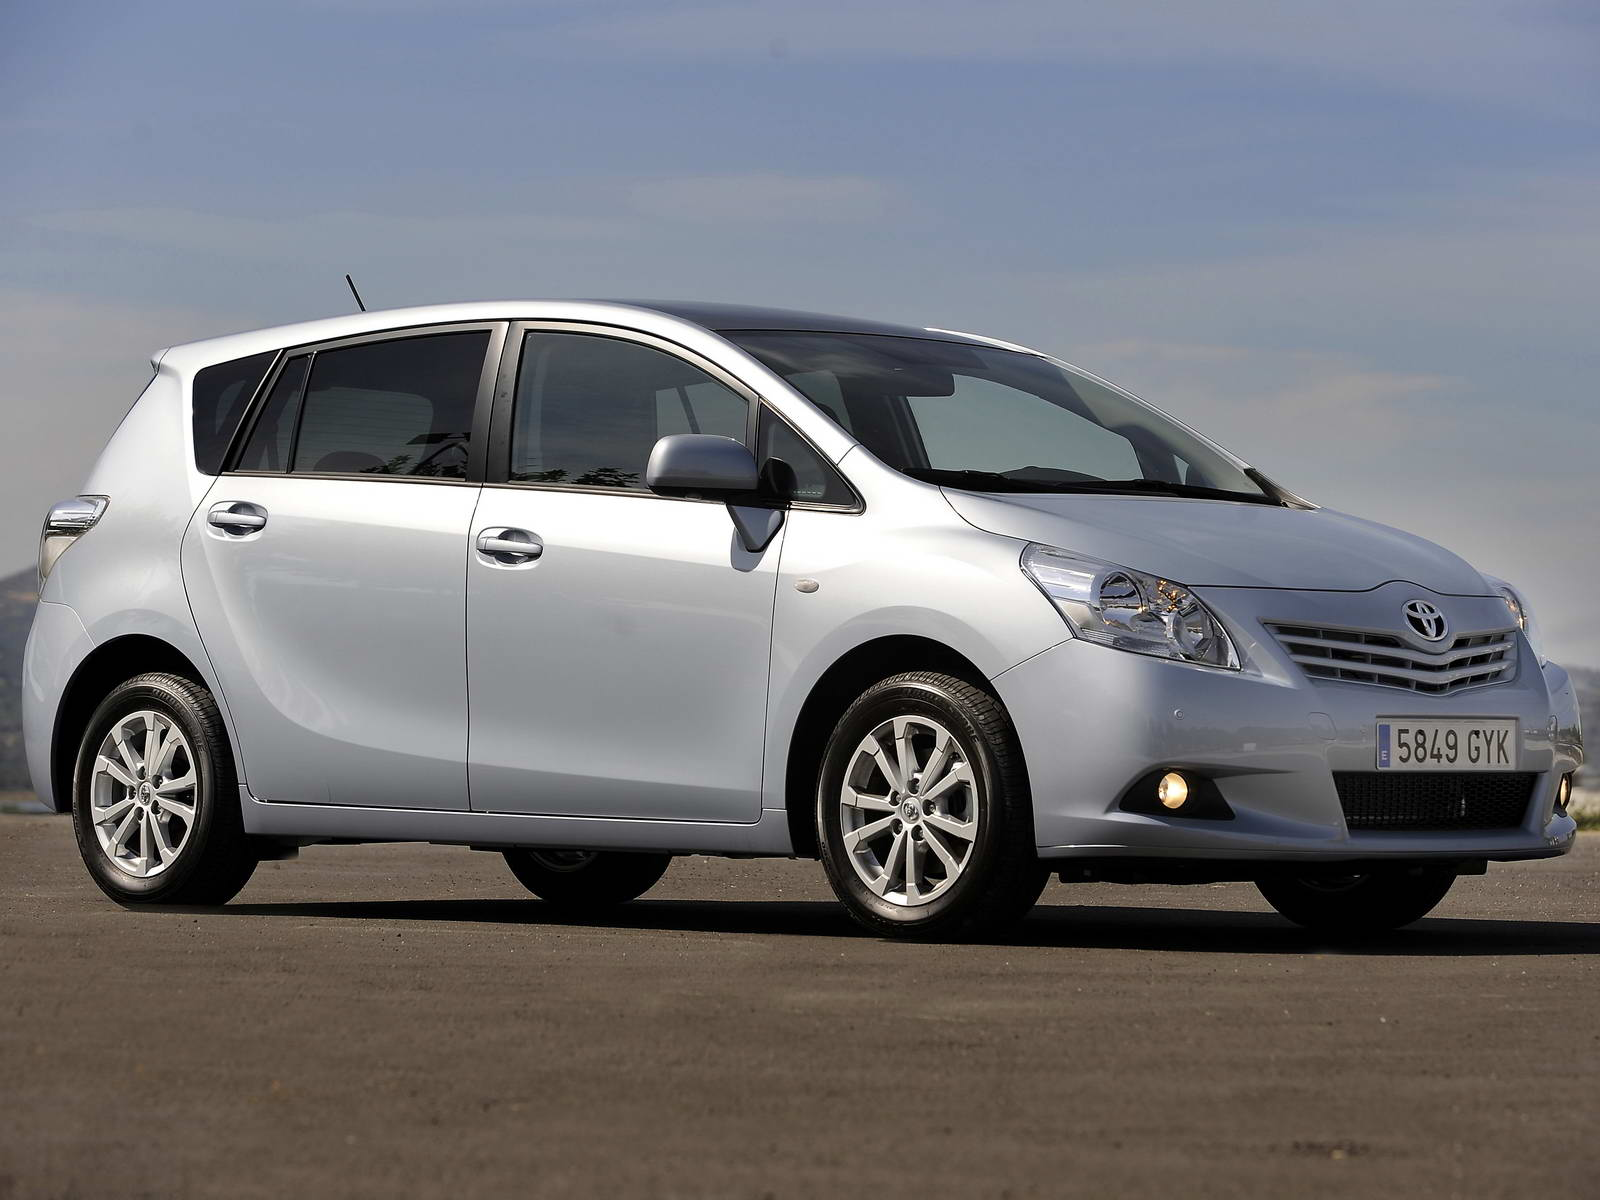 Toyota Verso 2.2 2011 photo - 1